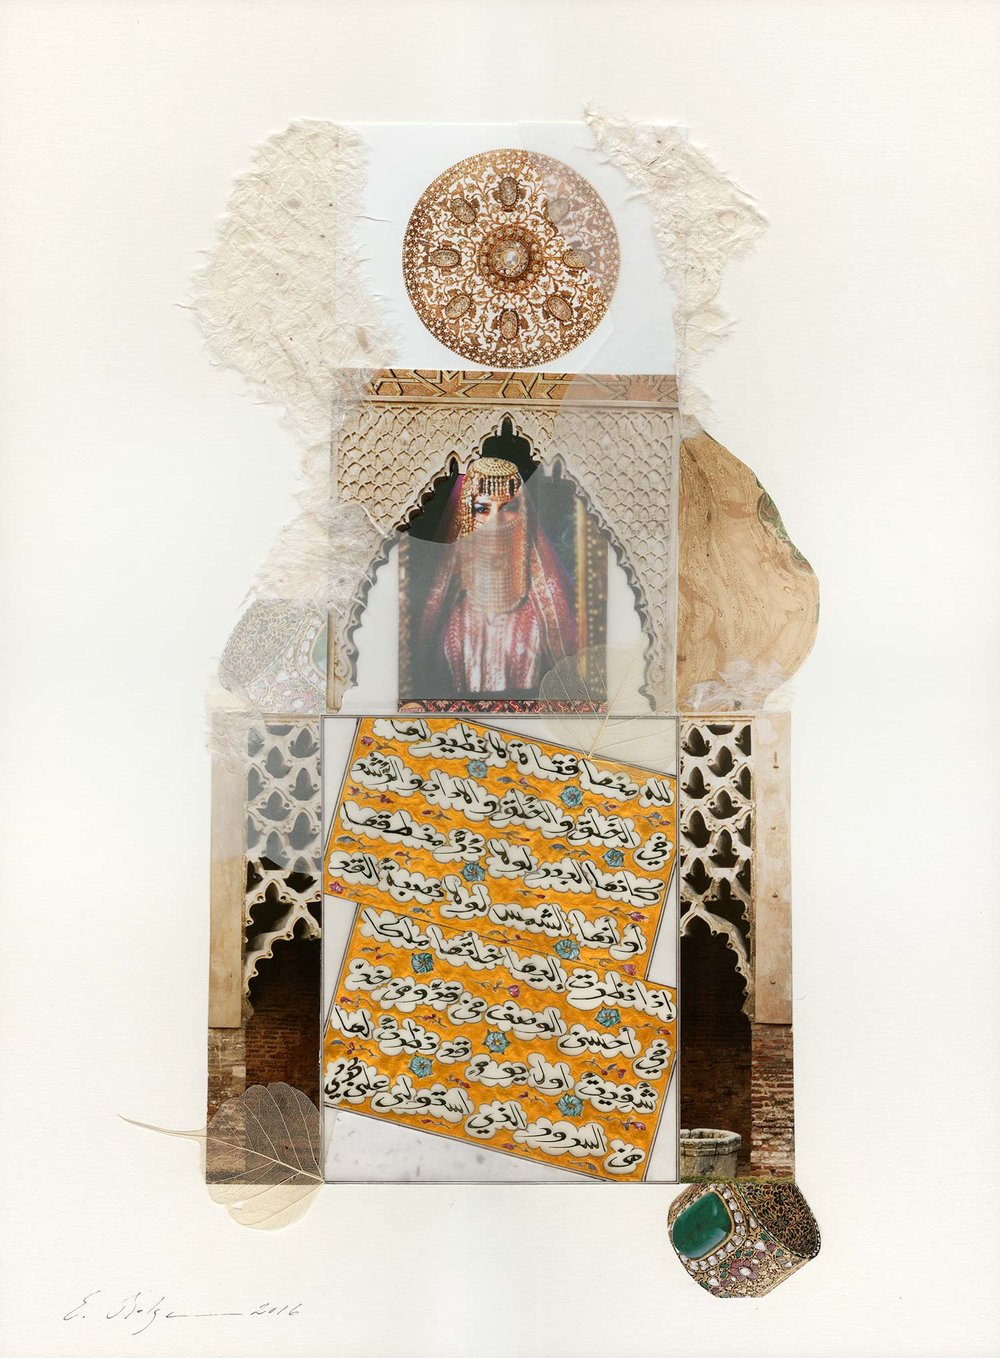 Bride  Private Collection Medina, Kingdom of Saudi Arabia Paper, Indian ink, watercolour, gold, dried leaf and gesso on solid mount board base 40 x 54 cm 2016